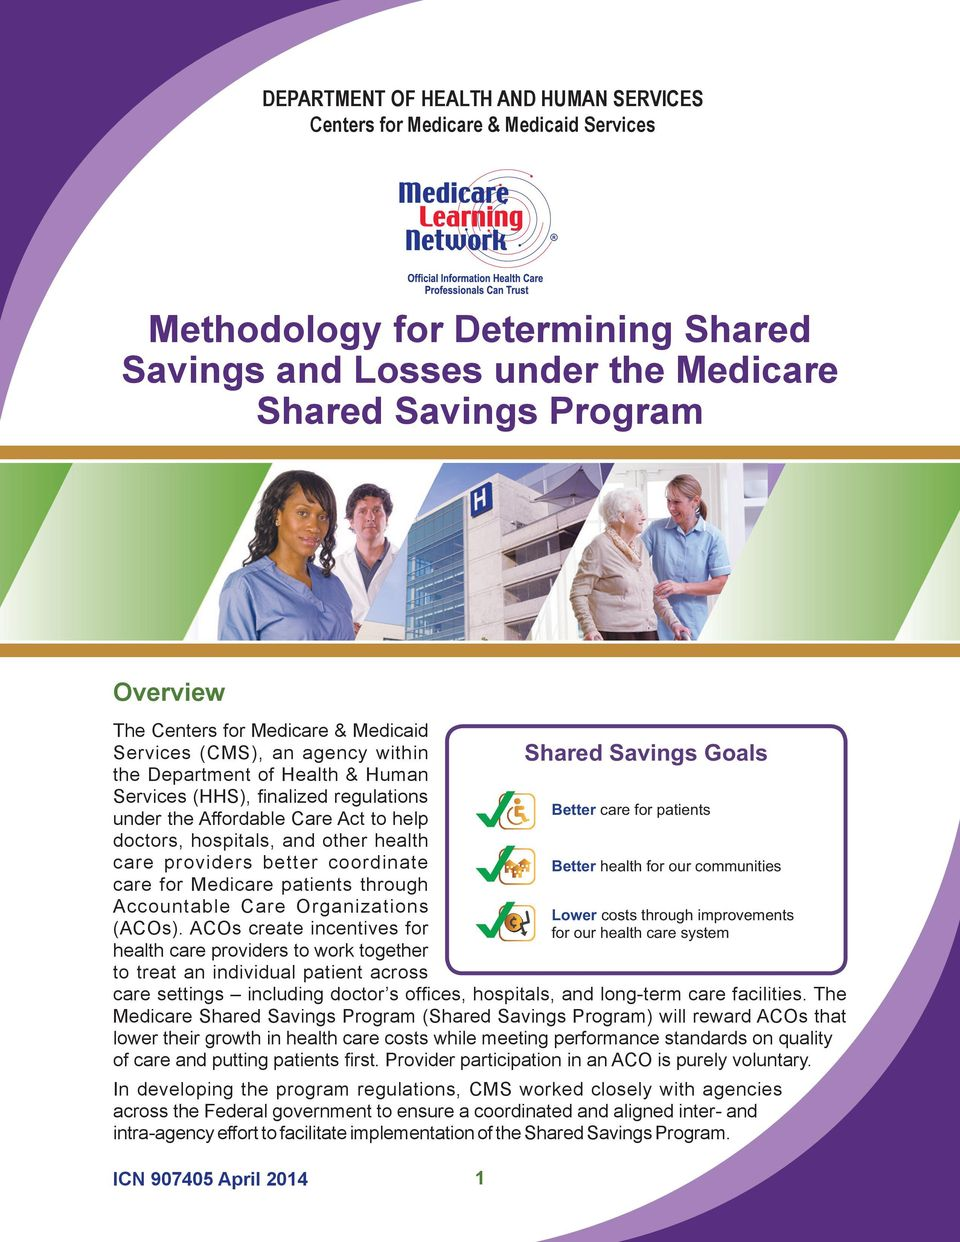 health care providers better coordinate care for Medicare patients through Accountable Care Organizations (ACOs).